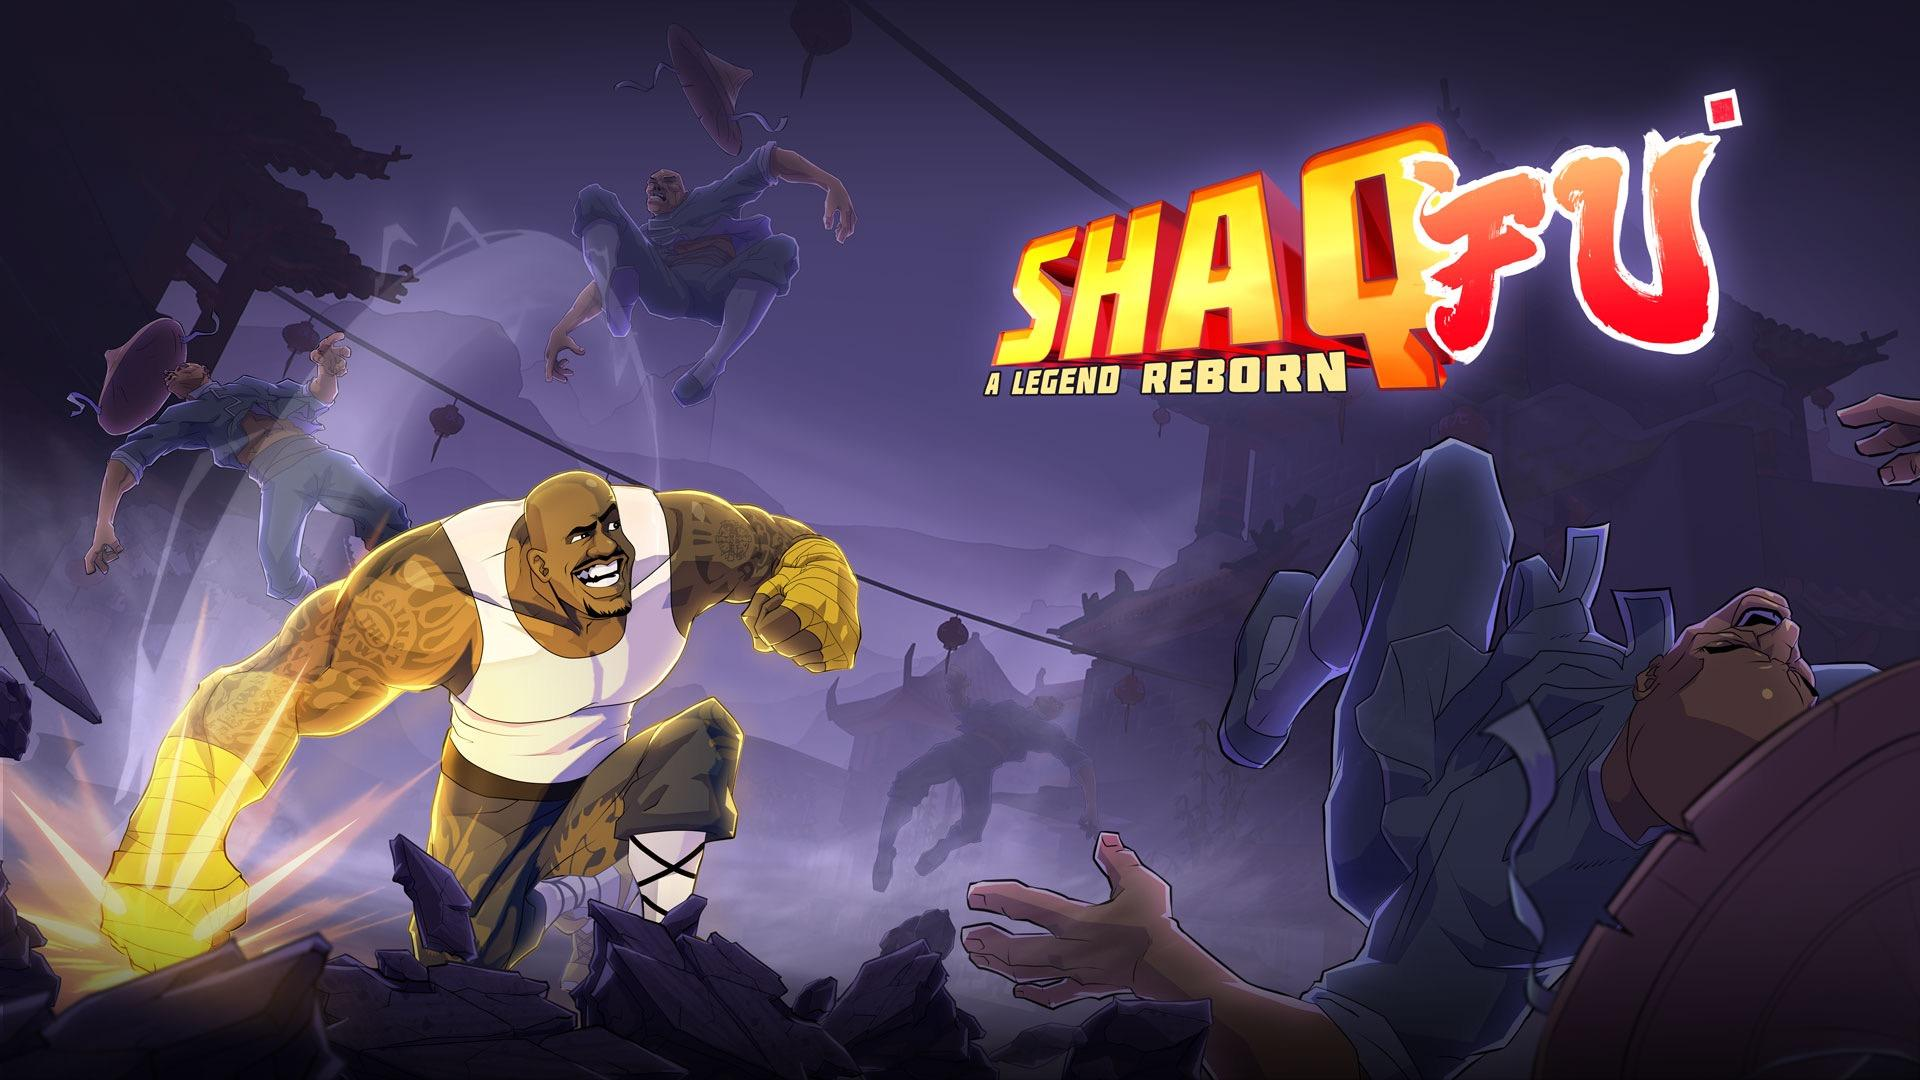 Shaq Fu: A Legend Reborn releases this Spring on the PC